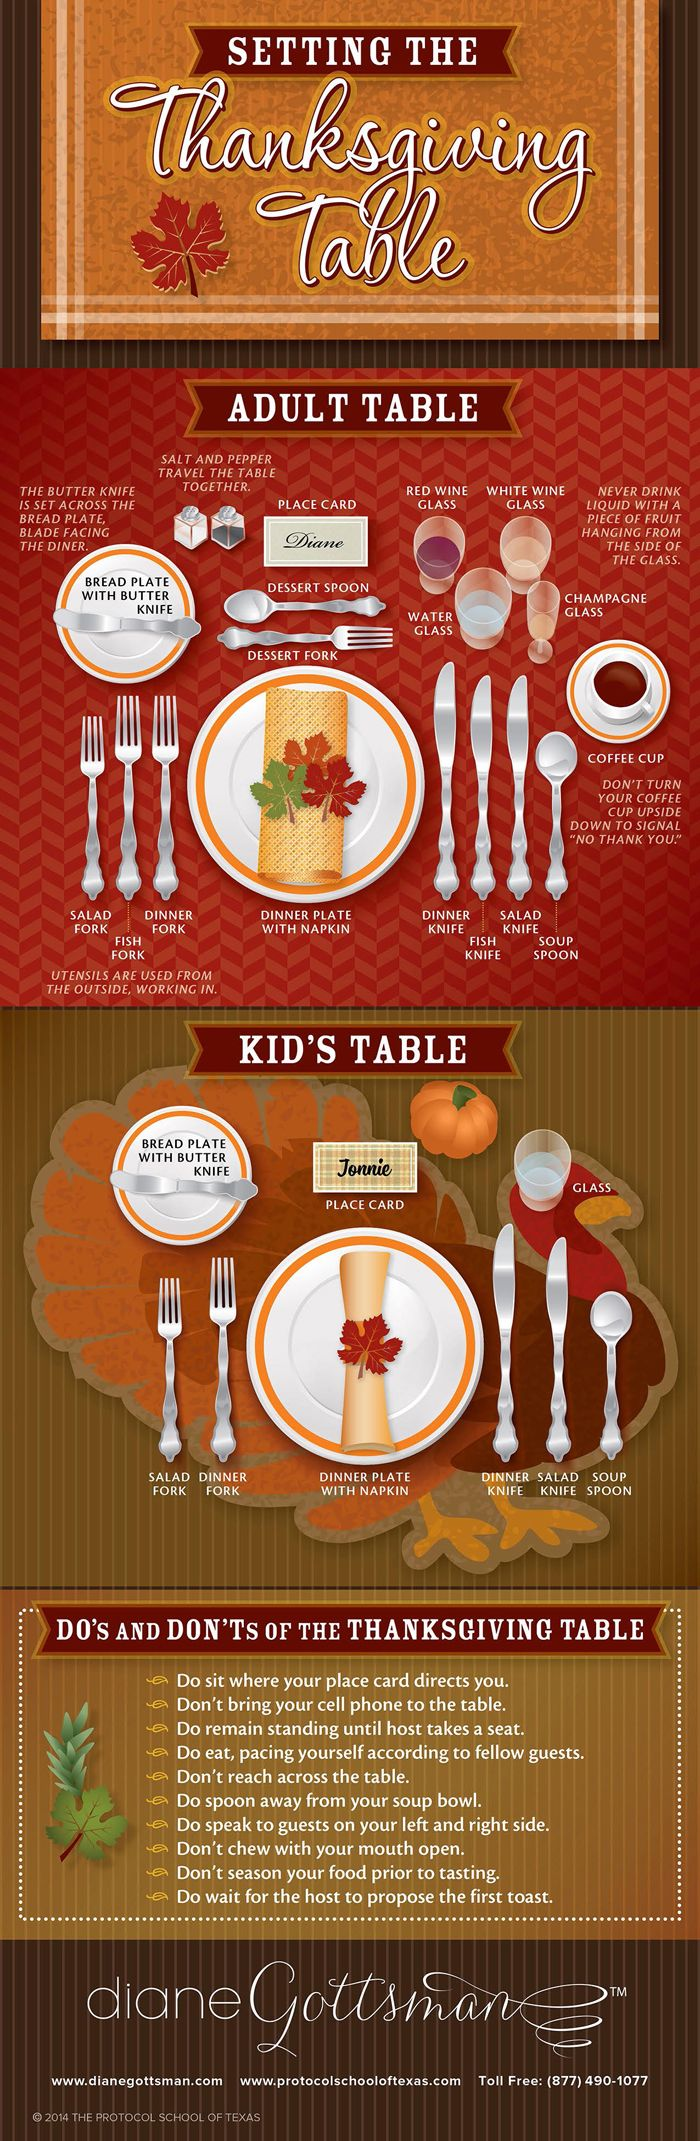 Thanksgiving Place Setting Guide www.dianegottsman.com                                                                                                                                                      More